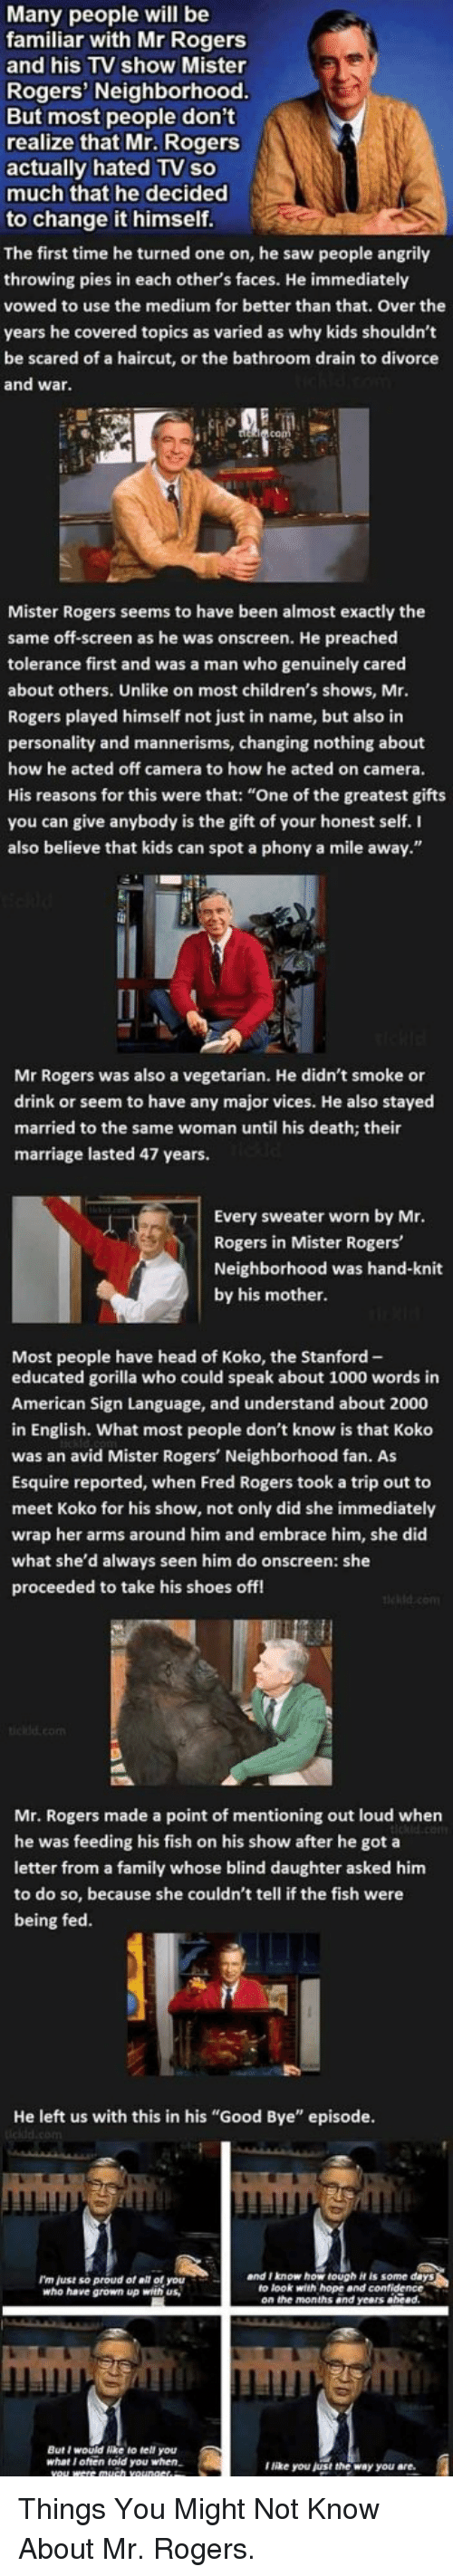 """fred rogers: Many people will be  familiar with Mr Rogers  and his TV show Mister  Rogers' Neighborhood  But most people don't  realize that Mr. Rogers  actually hated TV so  much that he decided  to change it himself  The first time he turned one on, he saw people angrily  throwing pies in each other's faces. He immediately  vowed to use the medium for better than that. Over the  years he covered topics as varied as why kids shouldn't  be scared of a haircut, or the bathroom drain to divorce  and wa  Mister Rogers seems to have been almost exactly the  same off-screen as he was onscreen. He preached  tolerance first and was a man who genuinely cared  about others. Unlike on most children's shows, Mr  Rogers played himself not just in name, but also in  personality and mannerisms, changing nothing about  how he acted off camera to how he acted on camera.  His reasons for this were that: """"One of the greatest gifts  you can give anybody is the gift of your honest self. I  also believe that kids can spot a phony a mile away.""""  Rogers was also a vegetarian. He didn't smoke or  drink or seem to have any major vices. He also stayed  married to the same woman until his death; their  marriage lasted 47 years.  Every sweater worn by Mr  Rogers in Mister Rogers  Neighborhood was hand-knit  by his mother  Most people have head of Koko, the Stanford-  educated gorilla who could speak about 1000 words in  American Sign Language, and understand about 2000  in English. What most people don't know is that Koko  was an avid Mister Rogers' Neighborhood fan. As  Esquire reported, when Fred Rogers took a trip out to  meet Koko for his show, not only did she immediately  wrap her arms around him and embrace him, she did  what she'd always seen him do onscreen: she  proceeded to take his shoes off  Mr. Rogers made a point of mentioning out loud when  e was feeding his fish on his show after he got a  letter from a family whose blind daughter asked him  to do so, because she couldn't tell"""